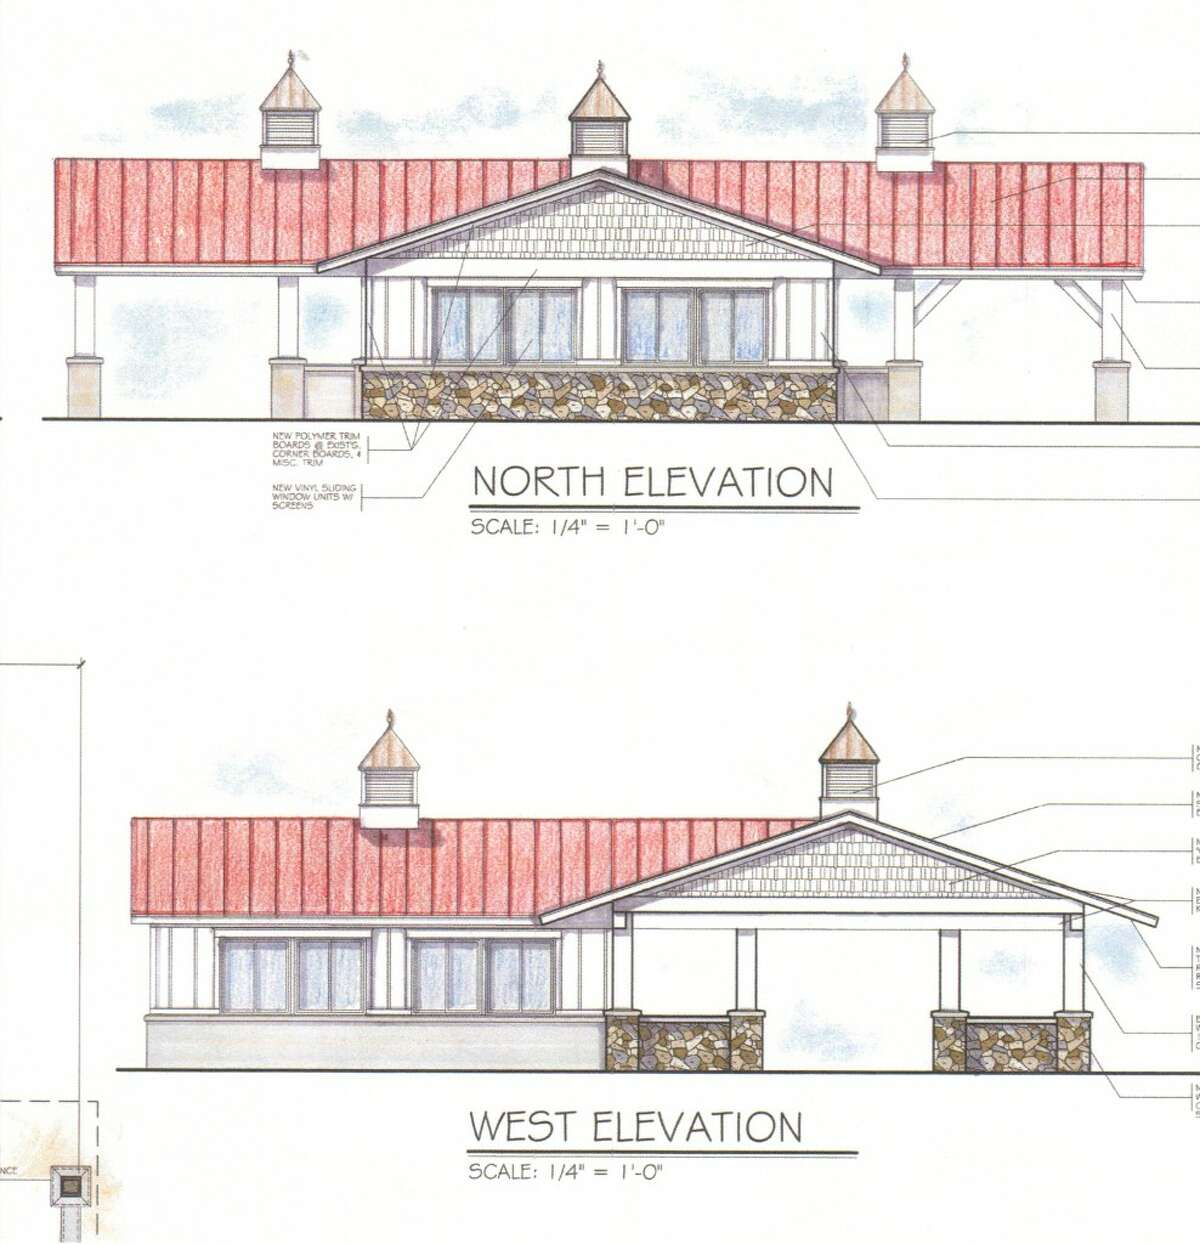 When completed, the refurbished Lions picnic pavilion will fit in with the City of Manistee's master plan for Douglas Park First Street Beach, and also have colors similar to the U.S. Coast Guard Station across the river from the building. Manistee architect Kendra Thompson designed the renovations to the picnic shelters and pavilion.